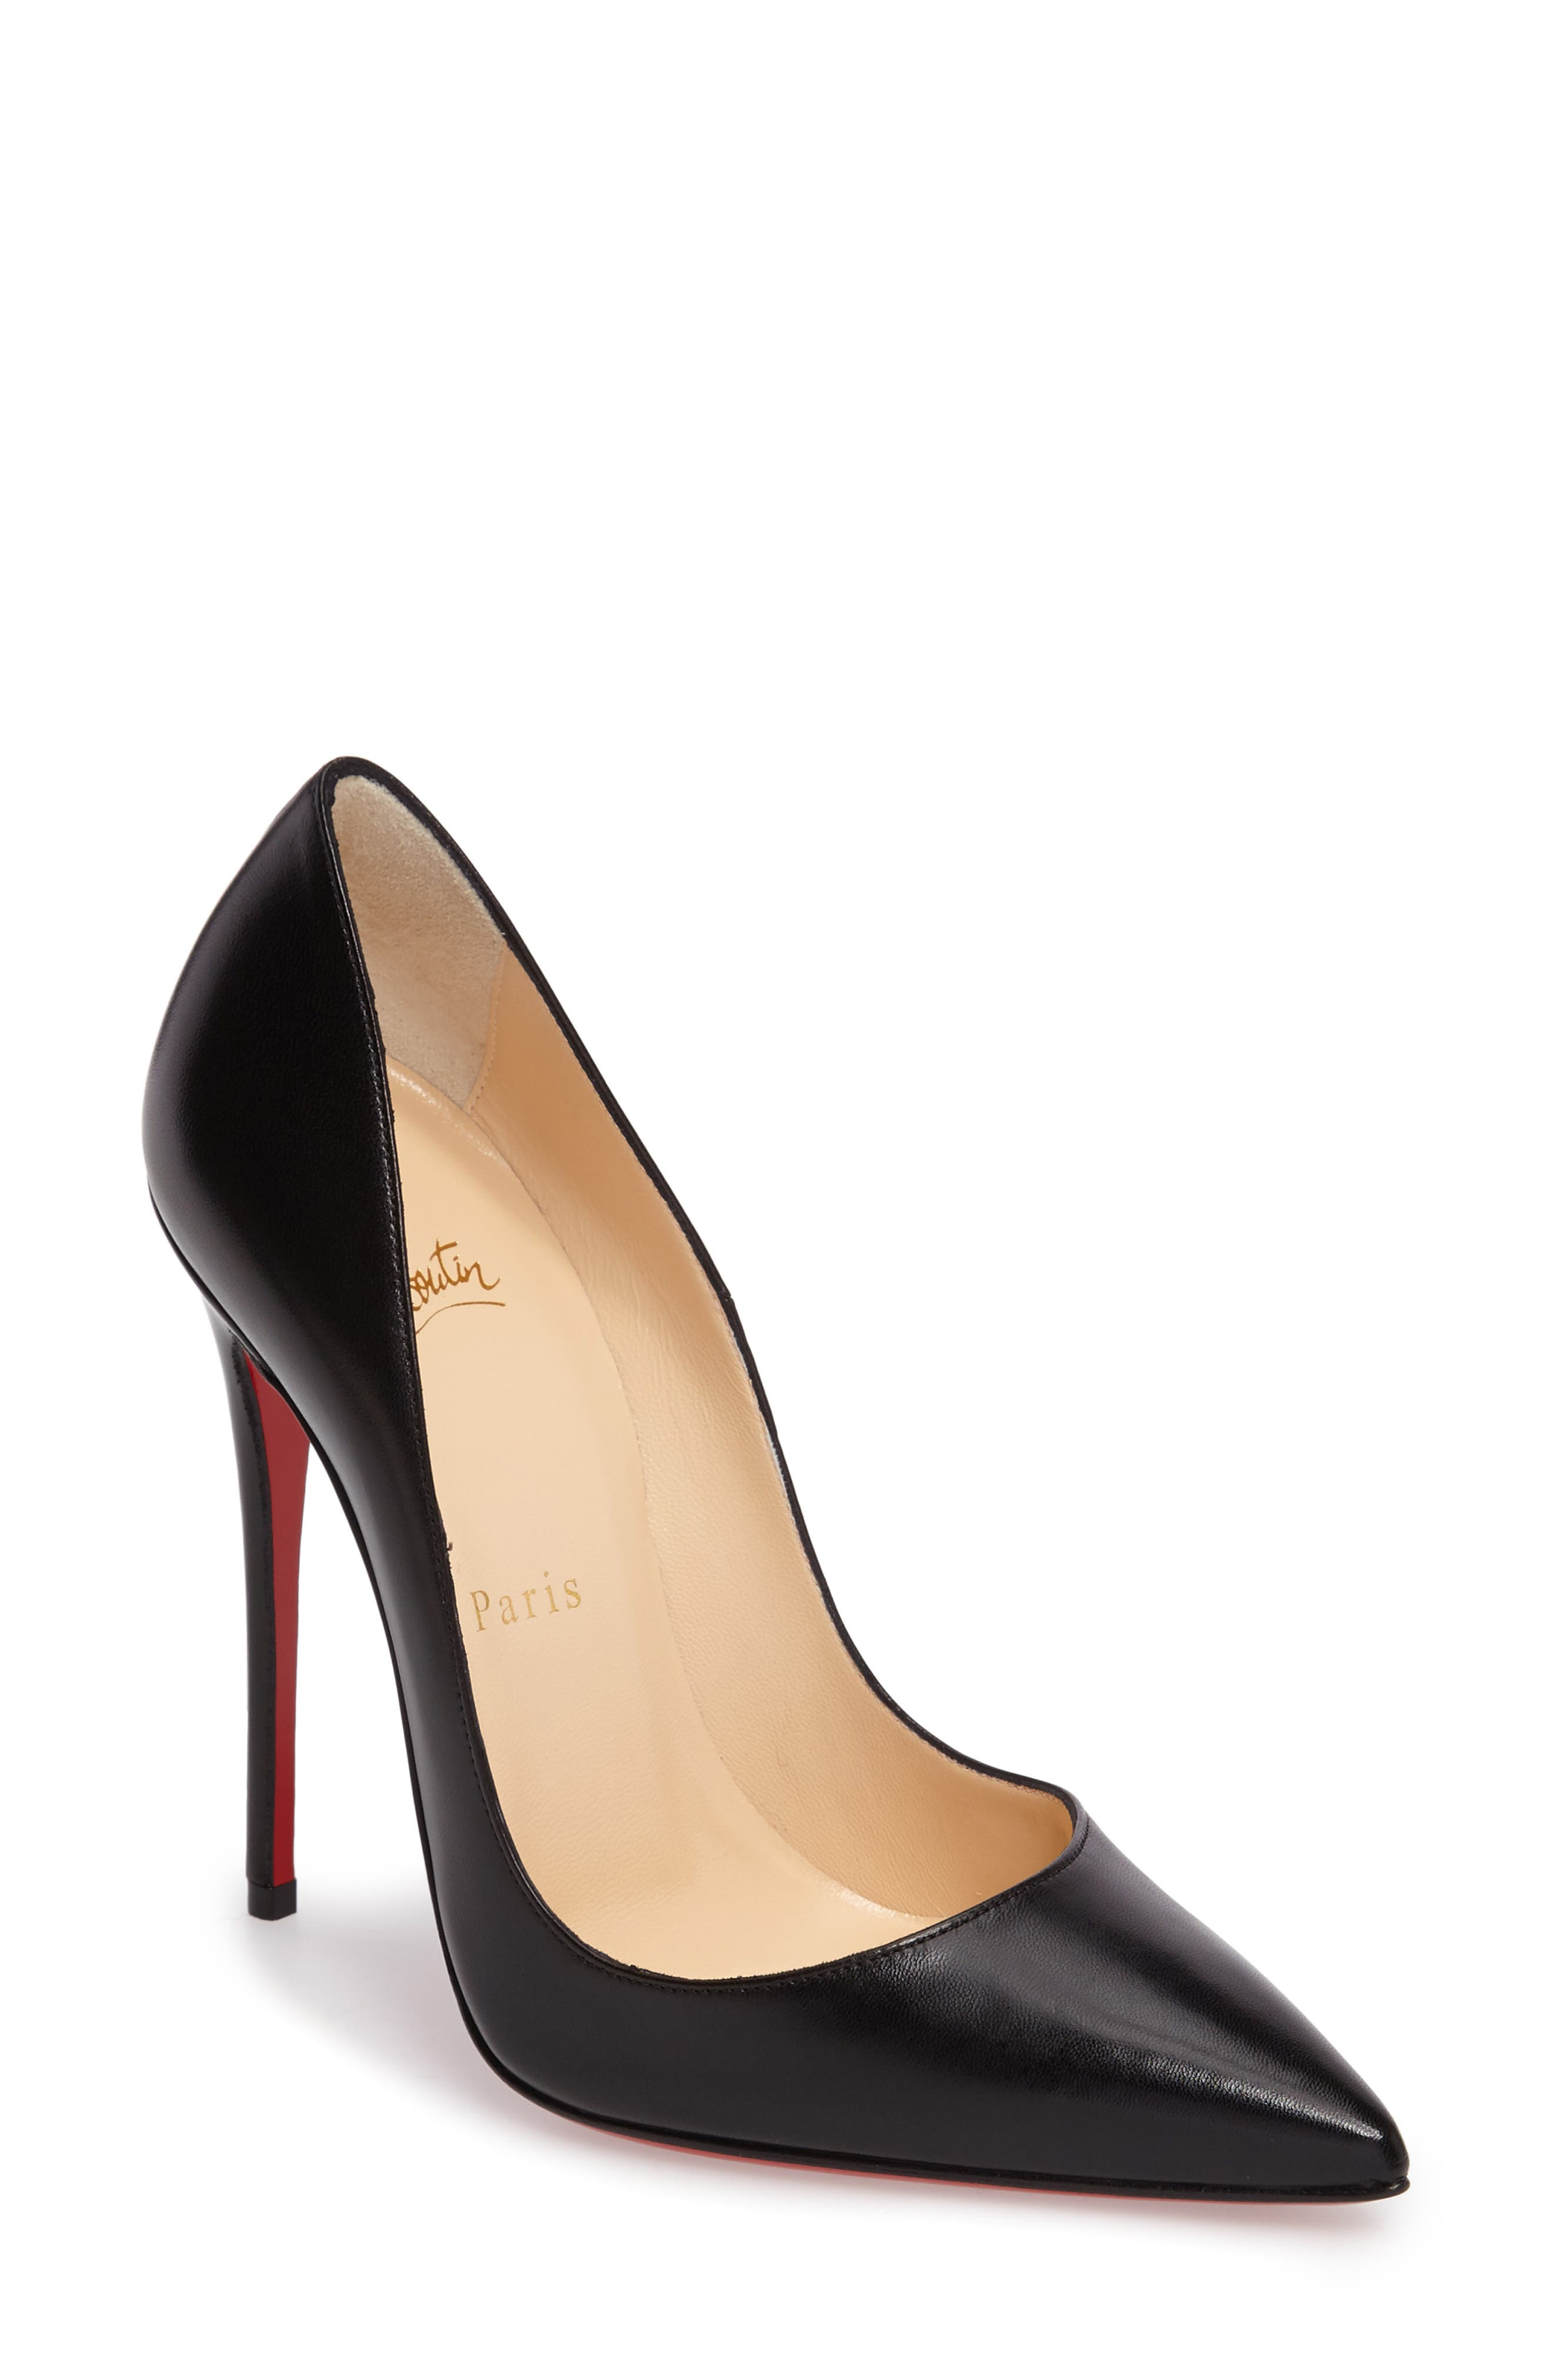 'So Kate' Pointy Toe Leather Pump,                             Main thumbnail 1, color,                             001